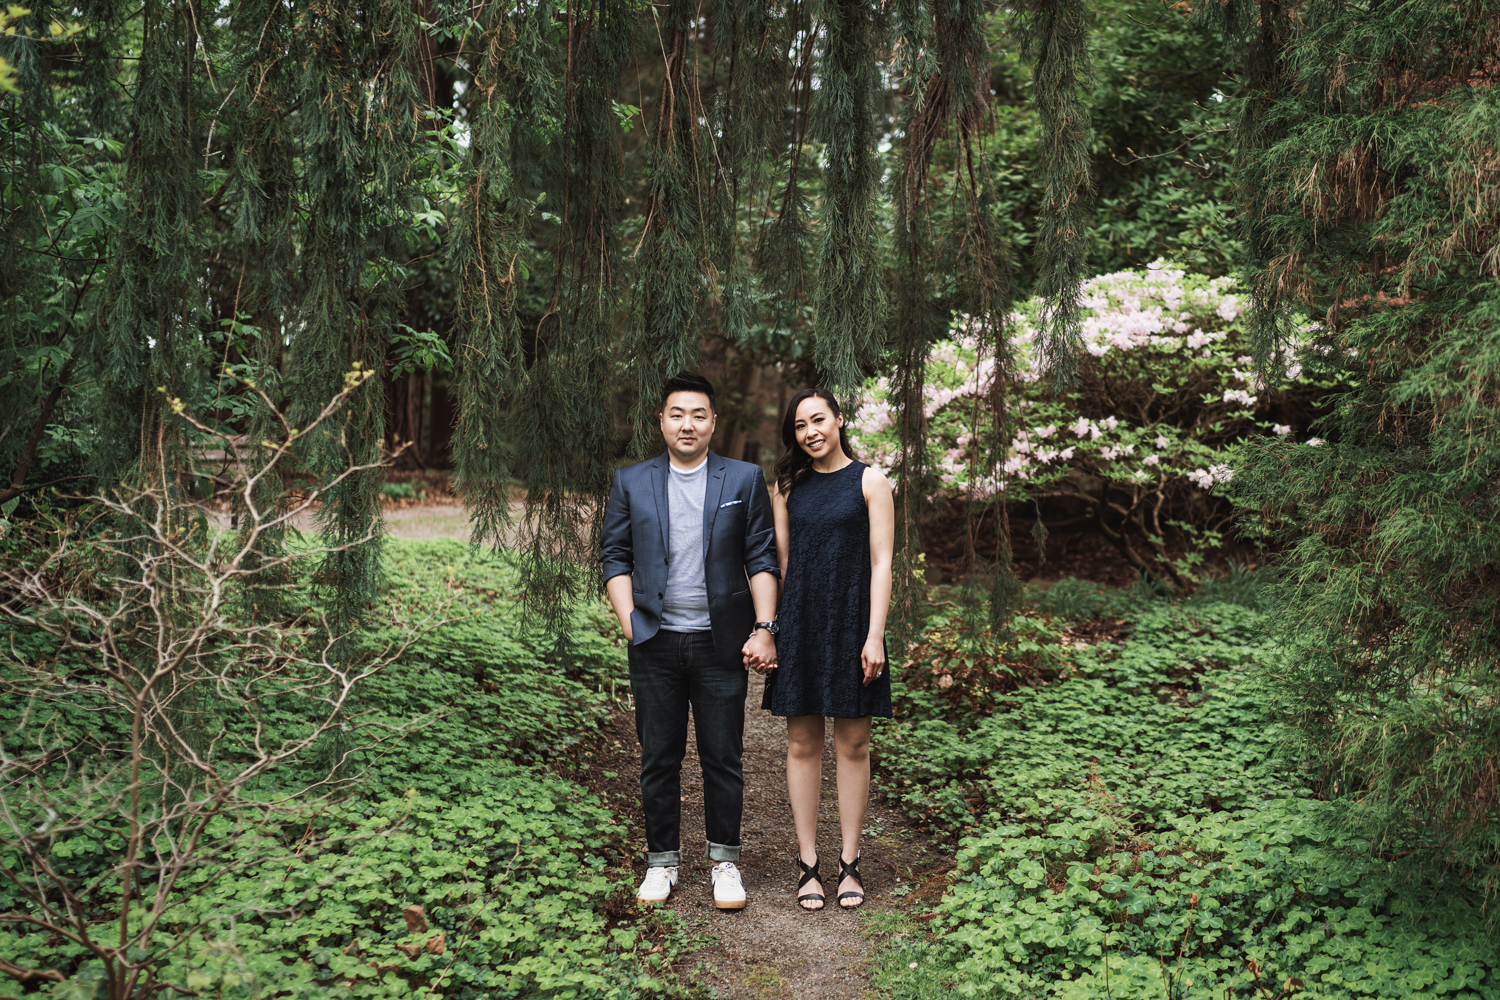 vancouver stanley park engagement photography spring